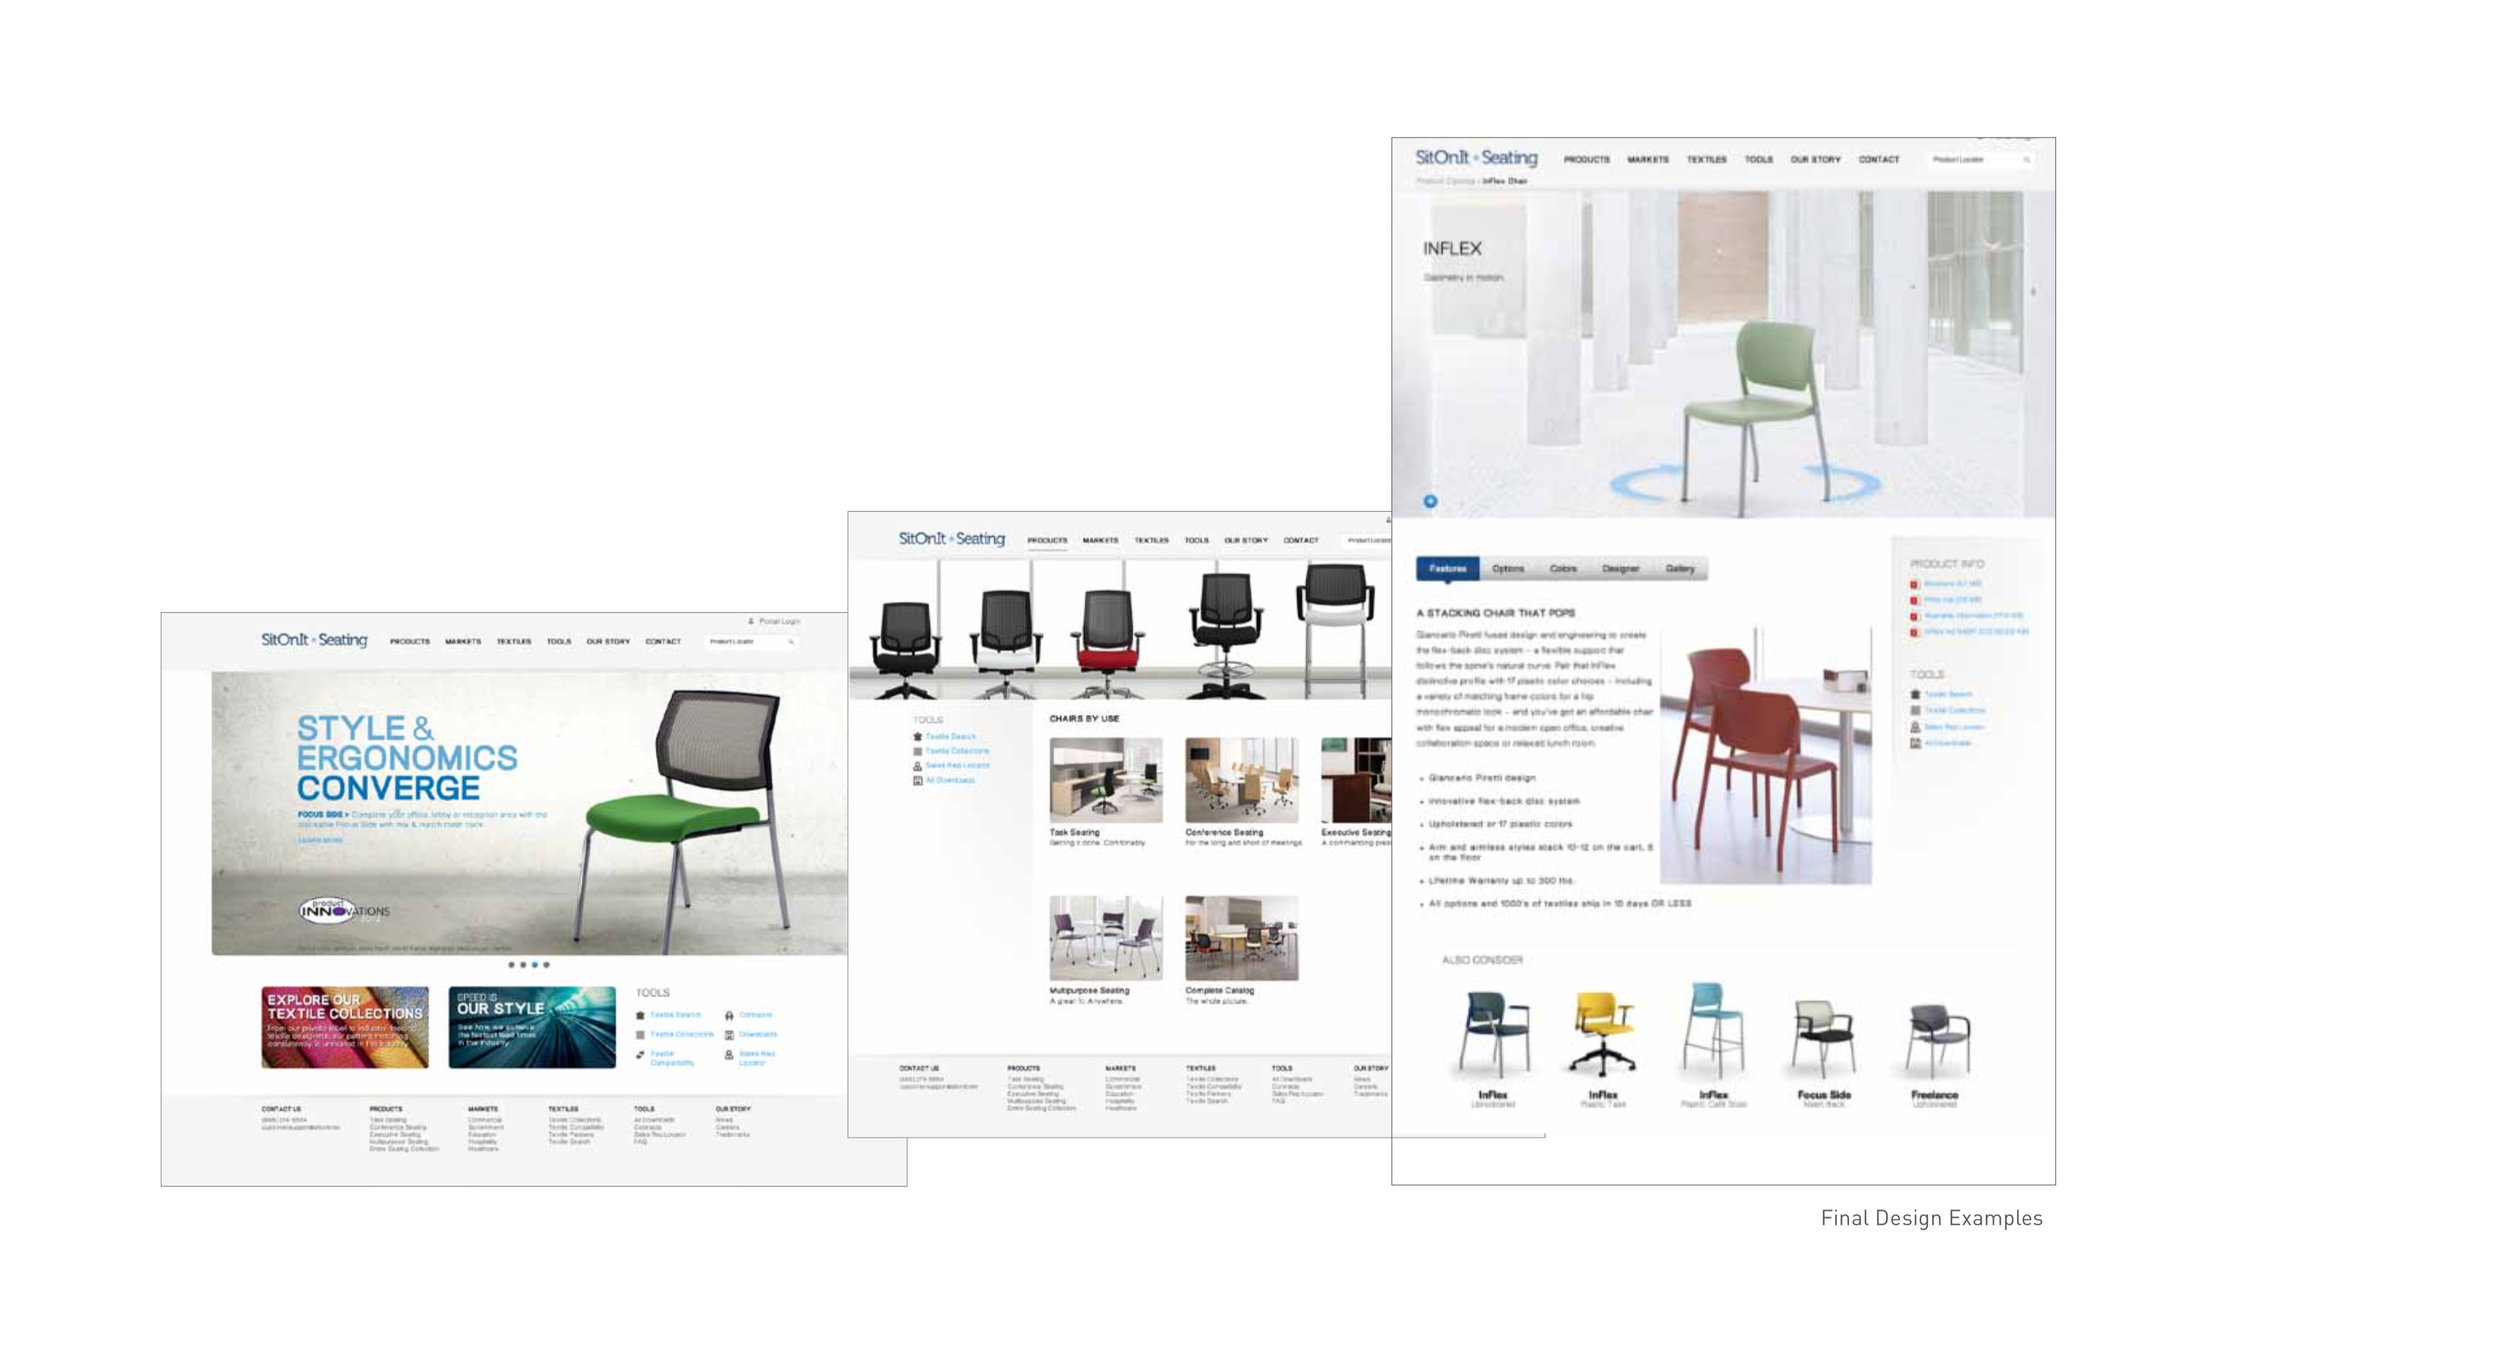 ABOUT THE PROJECT - Exemplis needed to reposition their brand in order to better compete in the marketplace. Even with a great product lineup, they were not recognized in the industry. The entire product catalogs expressed in an invigorated brand and eCommerce experience as a result of new site architecture, visual design and customization modules.